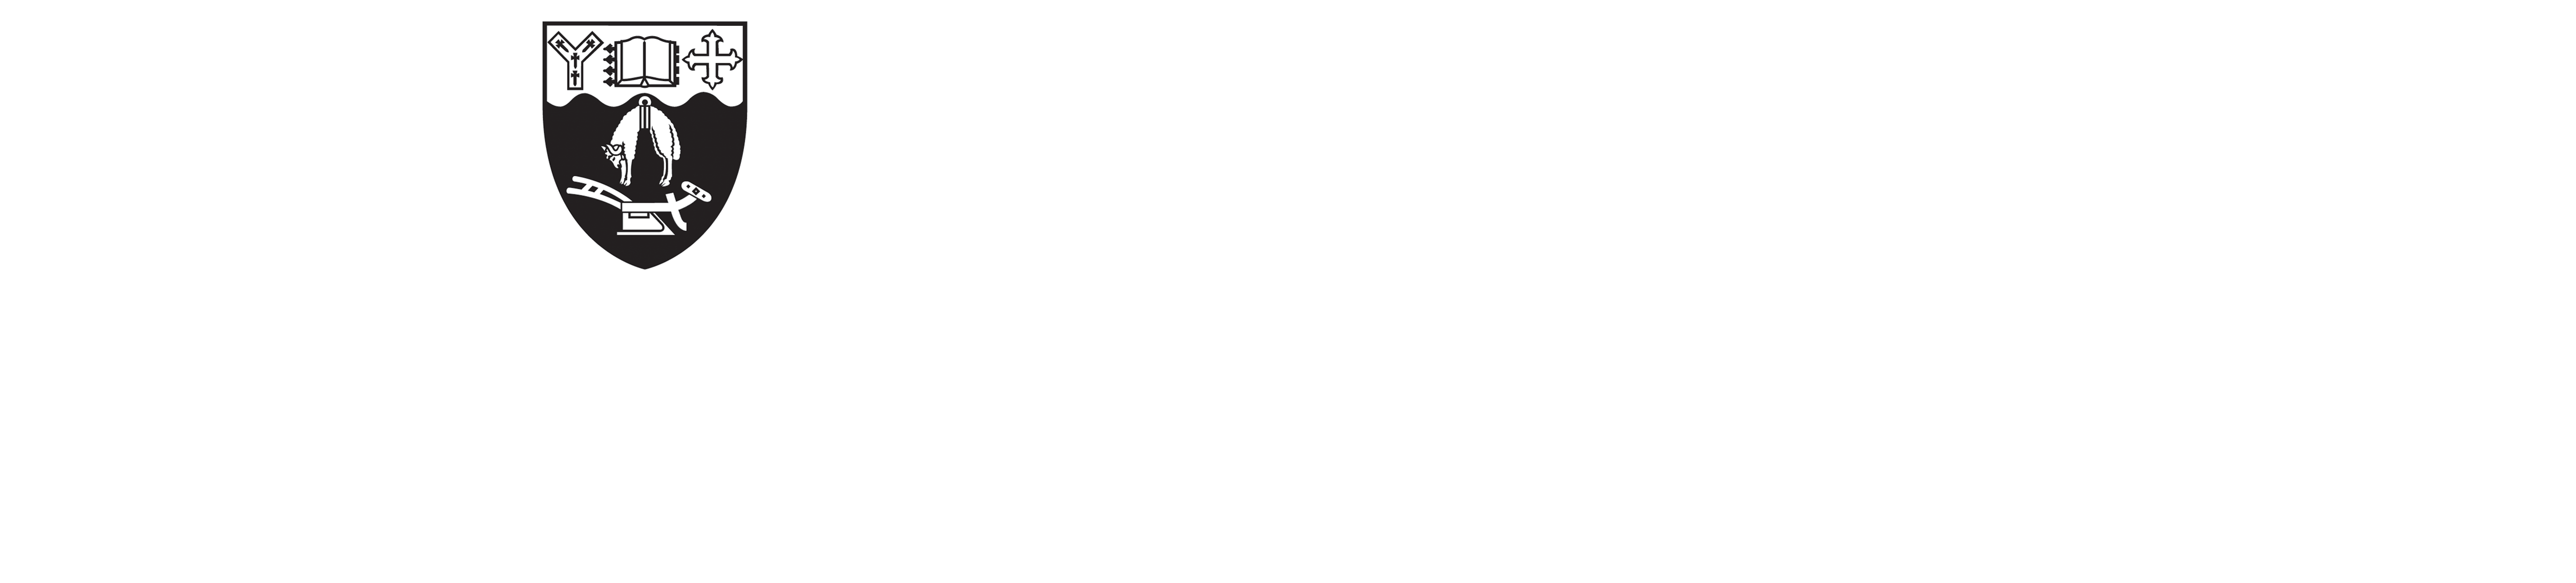 UC Digital Humanities Research Network